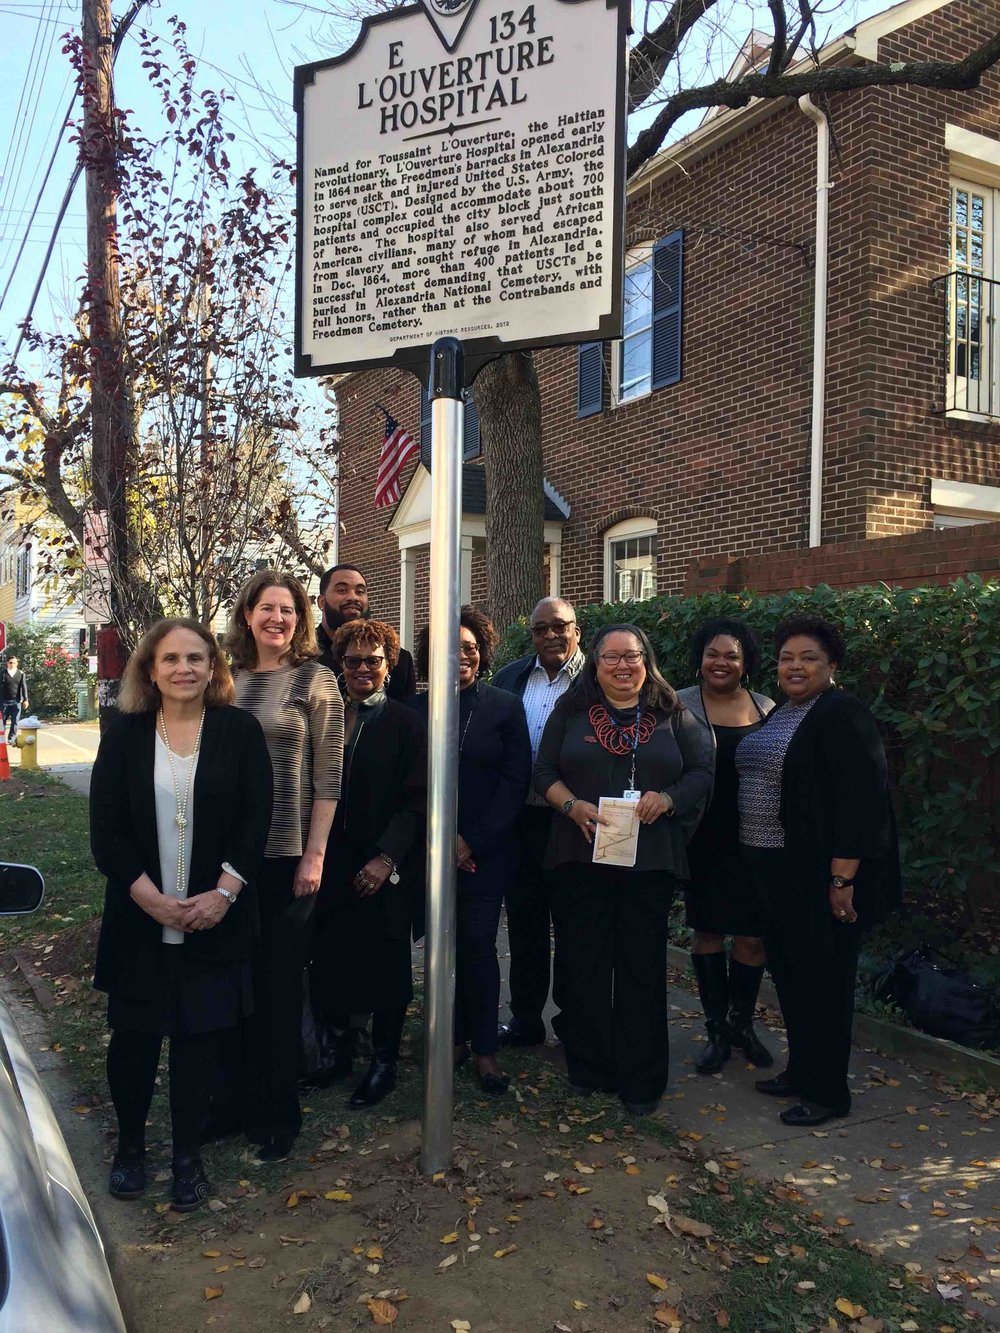 New sign, with City Archaeologist Fran Bromberg, Mayor Alison Silverberg, members of the Shiloh Baptist Church Choir, and Alexandria Black History Museum Director Audrey Davis. Photo by Ruth Reeder.